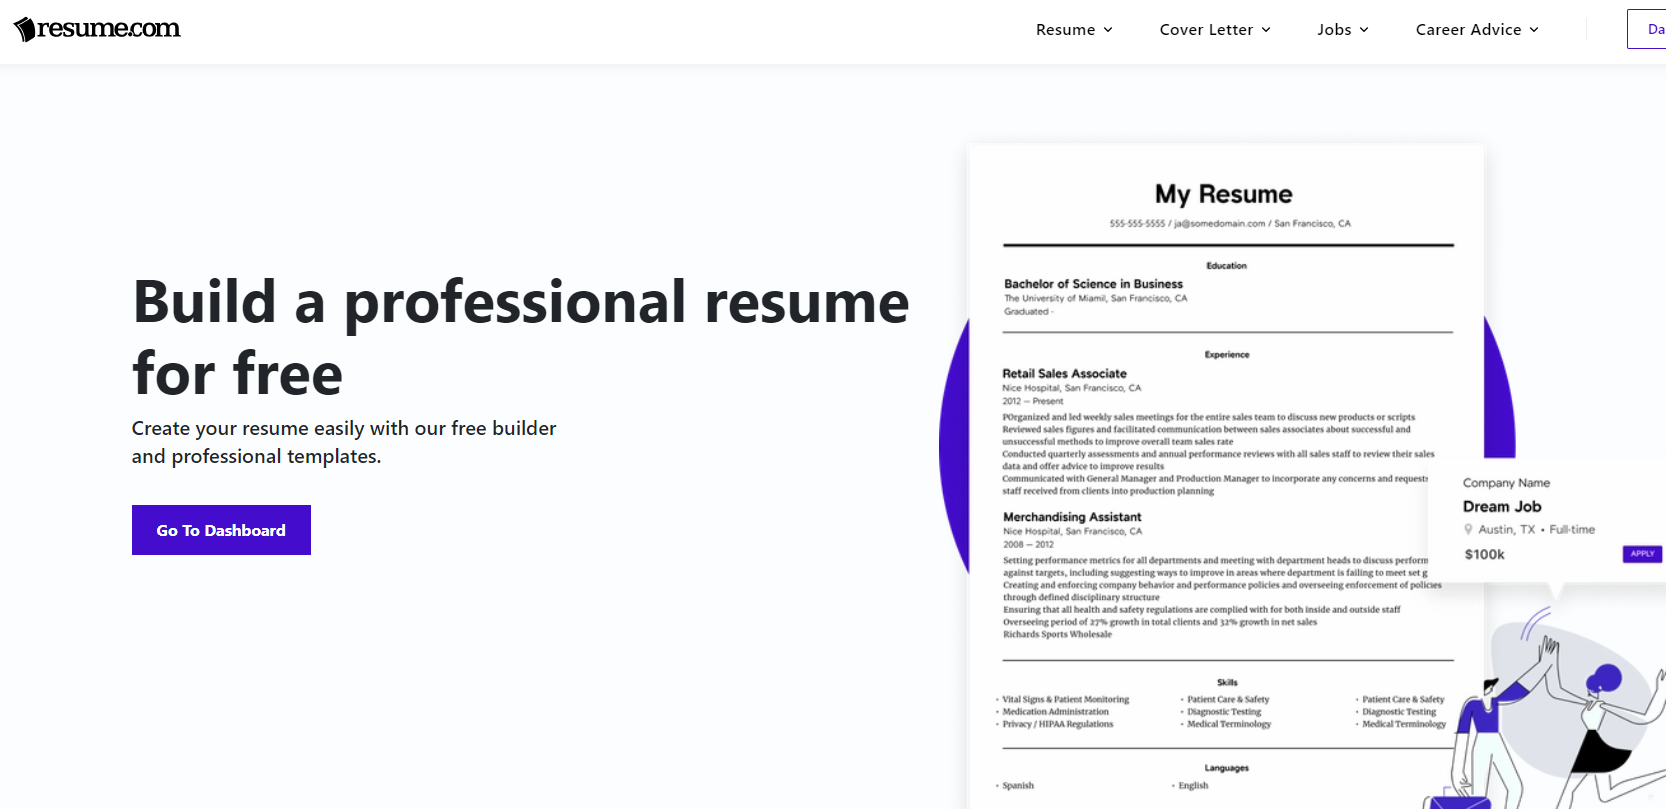 resume.com Review by TopResumeWritingServices